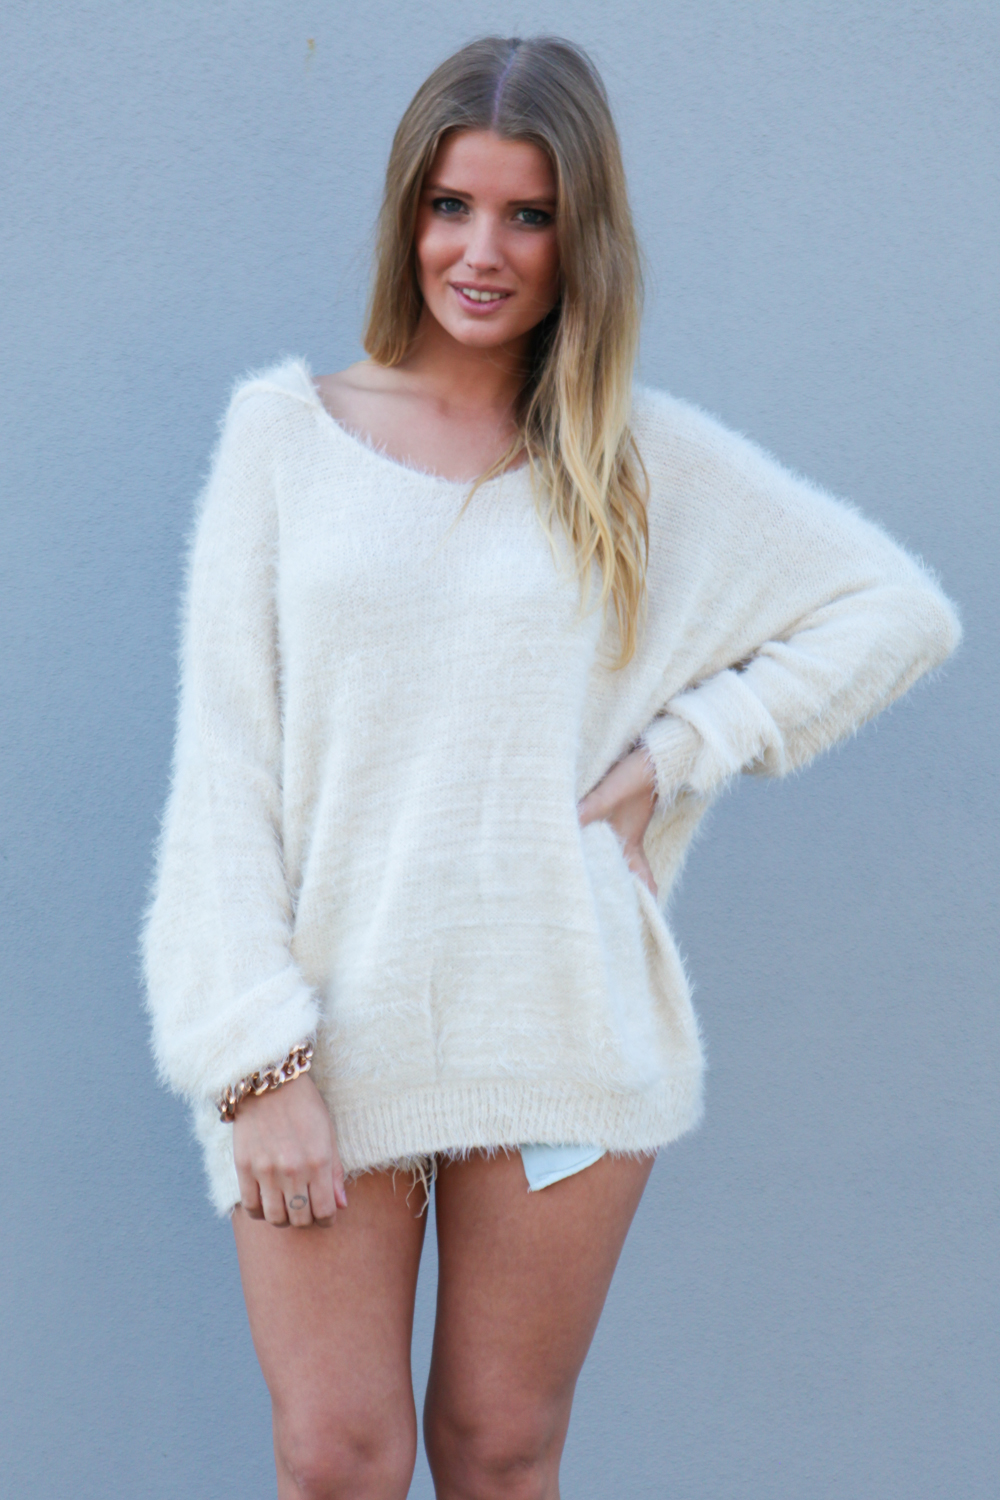 white Sweater - Cream Hooded Oversized Knit Sweater | UsTrendy